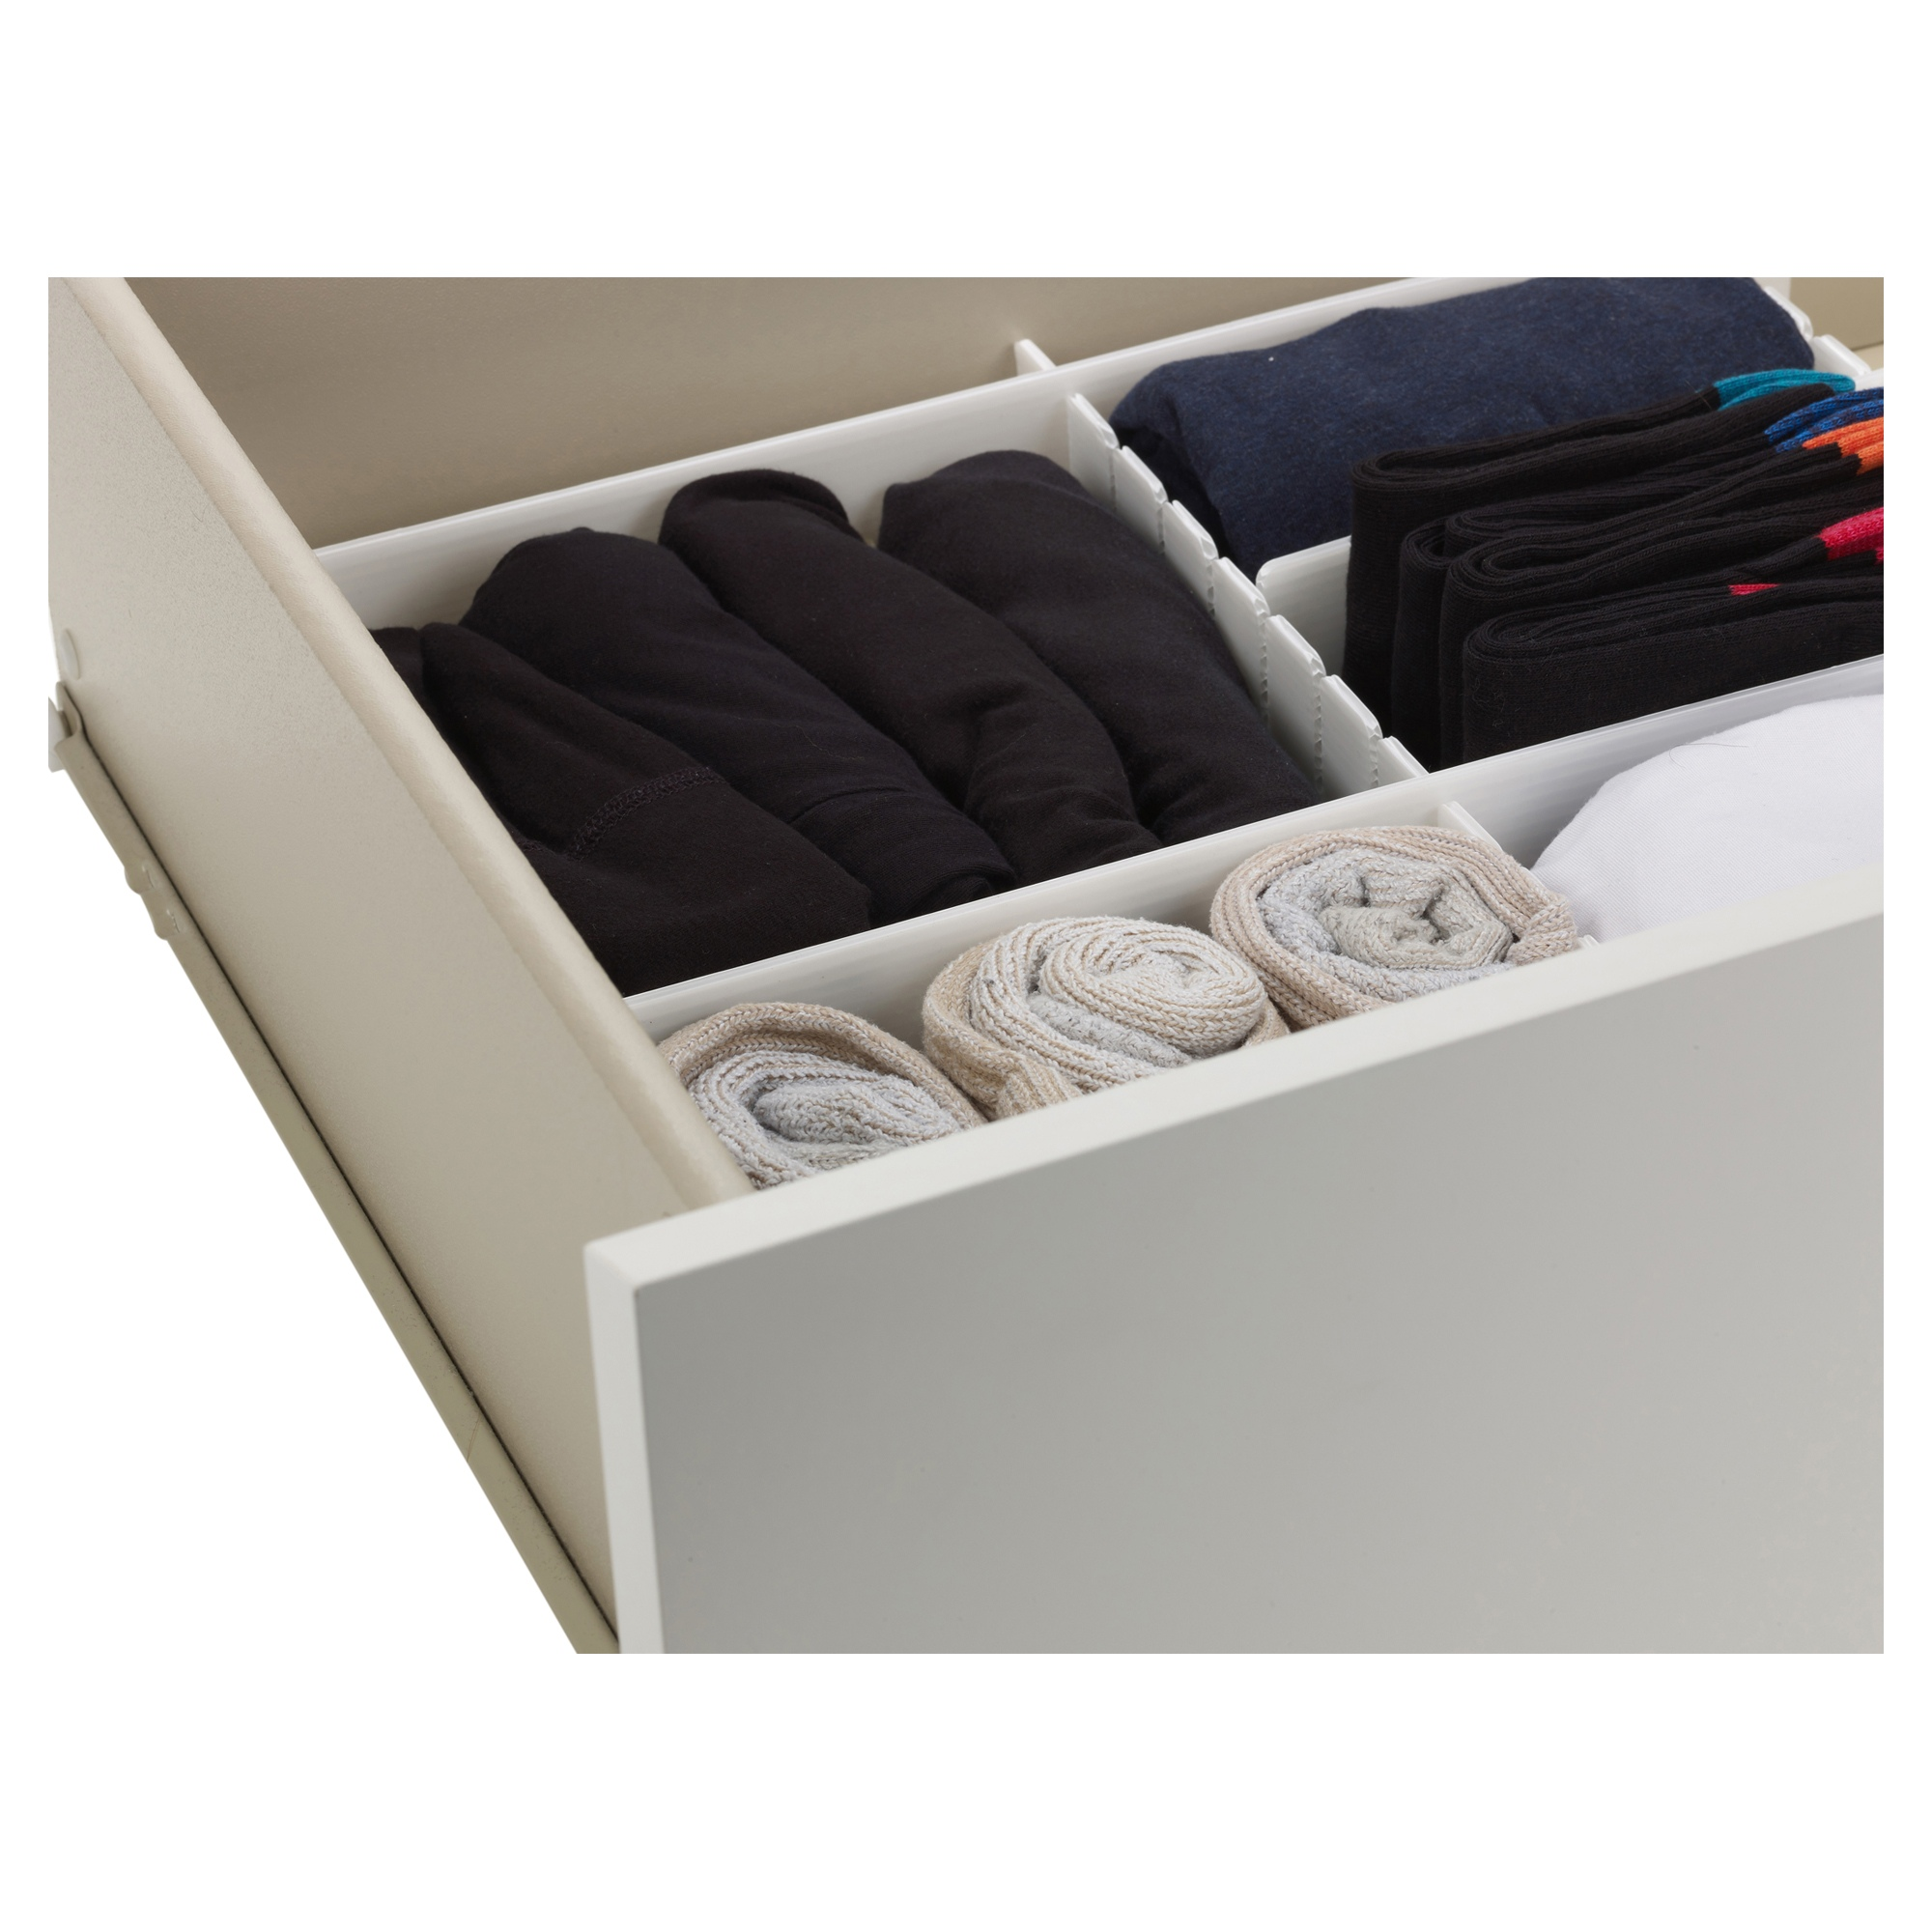 ... Bedroom Drawer Organizers By 6pc Adjustable Drawer Organizer Many  Compartments Storage ...